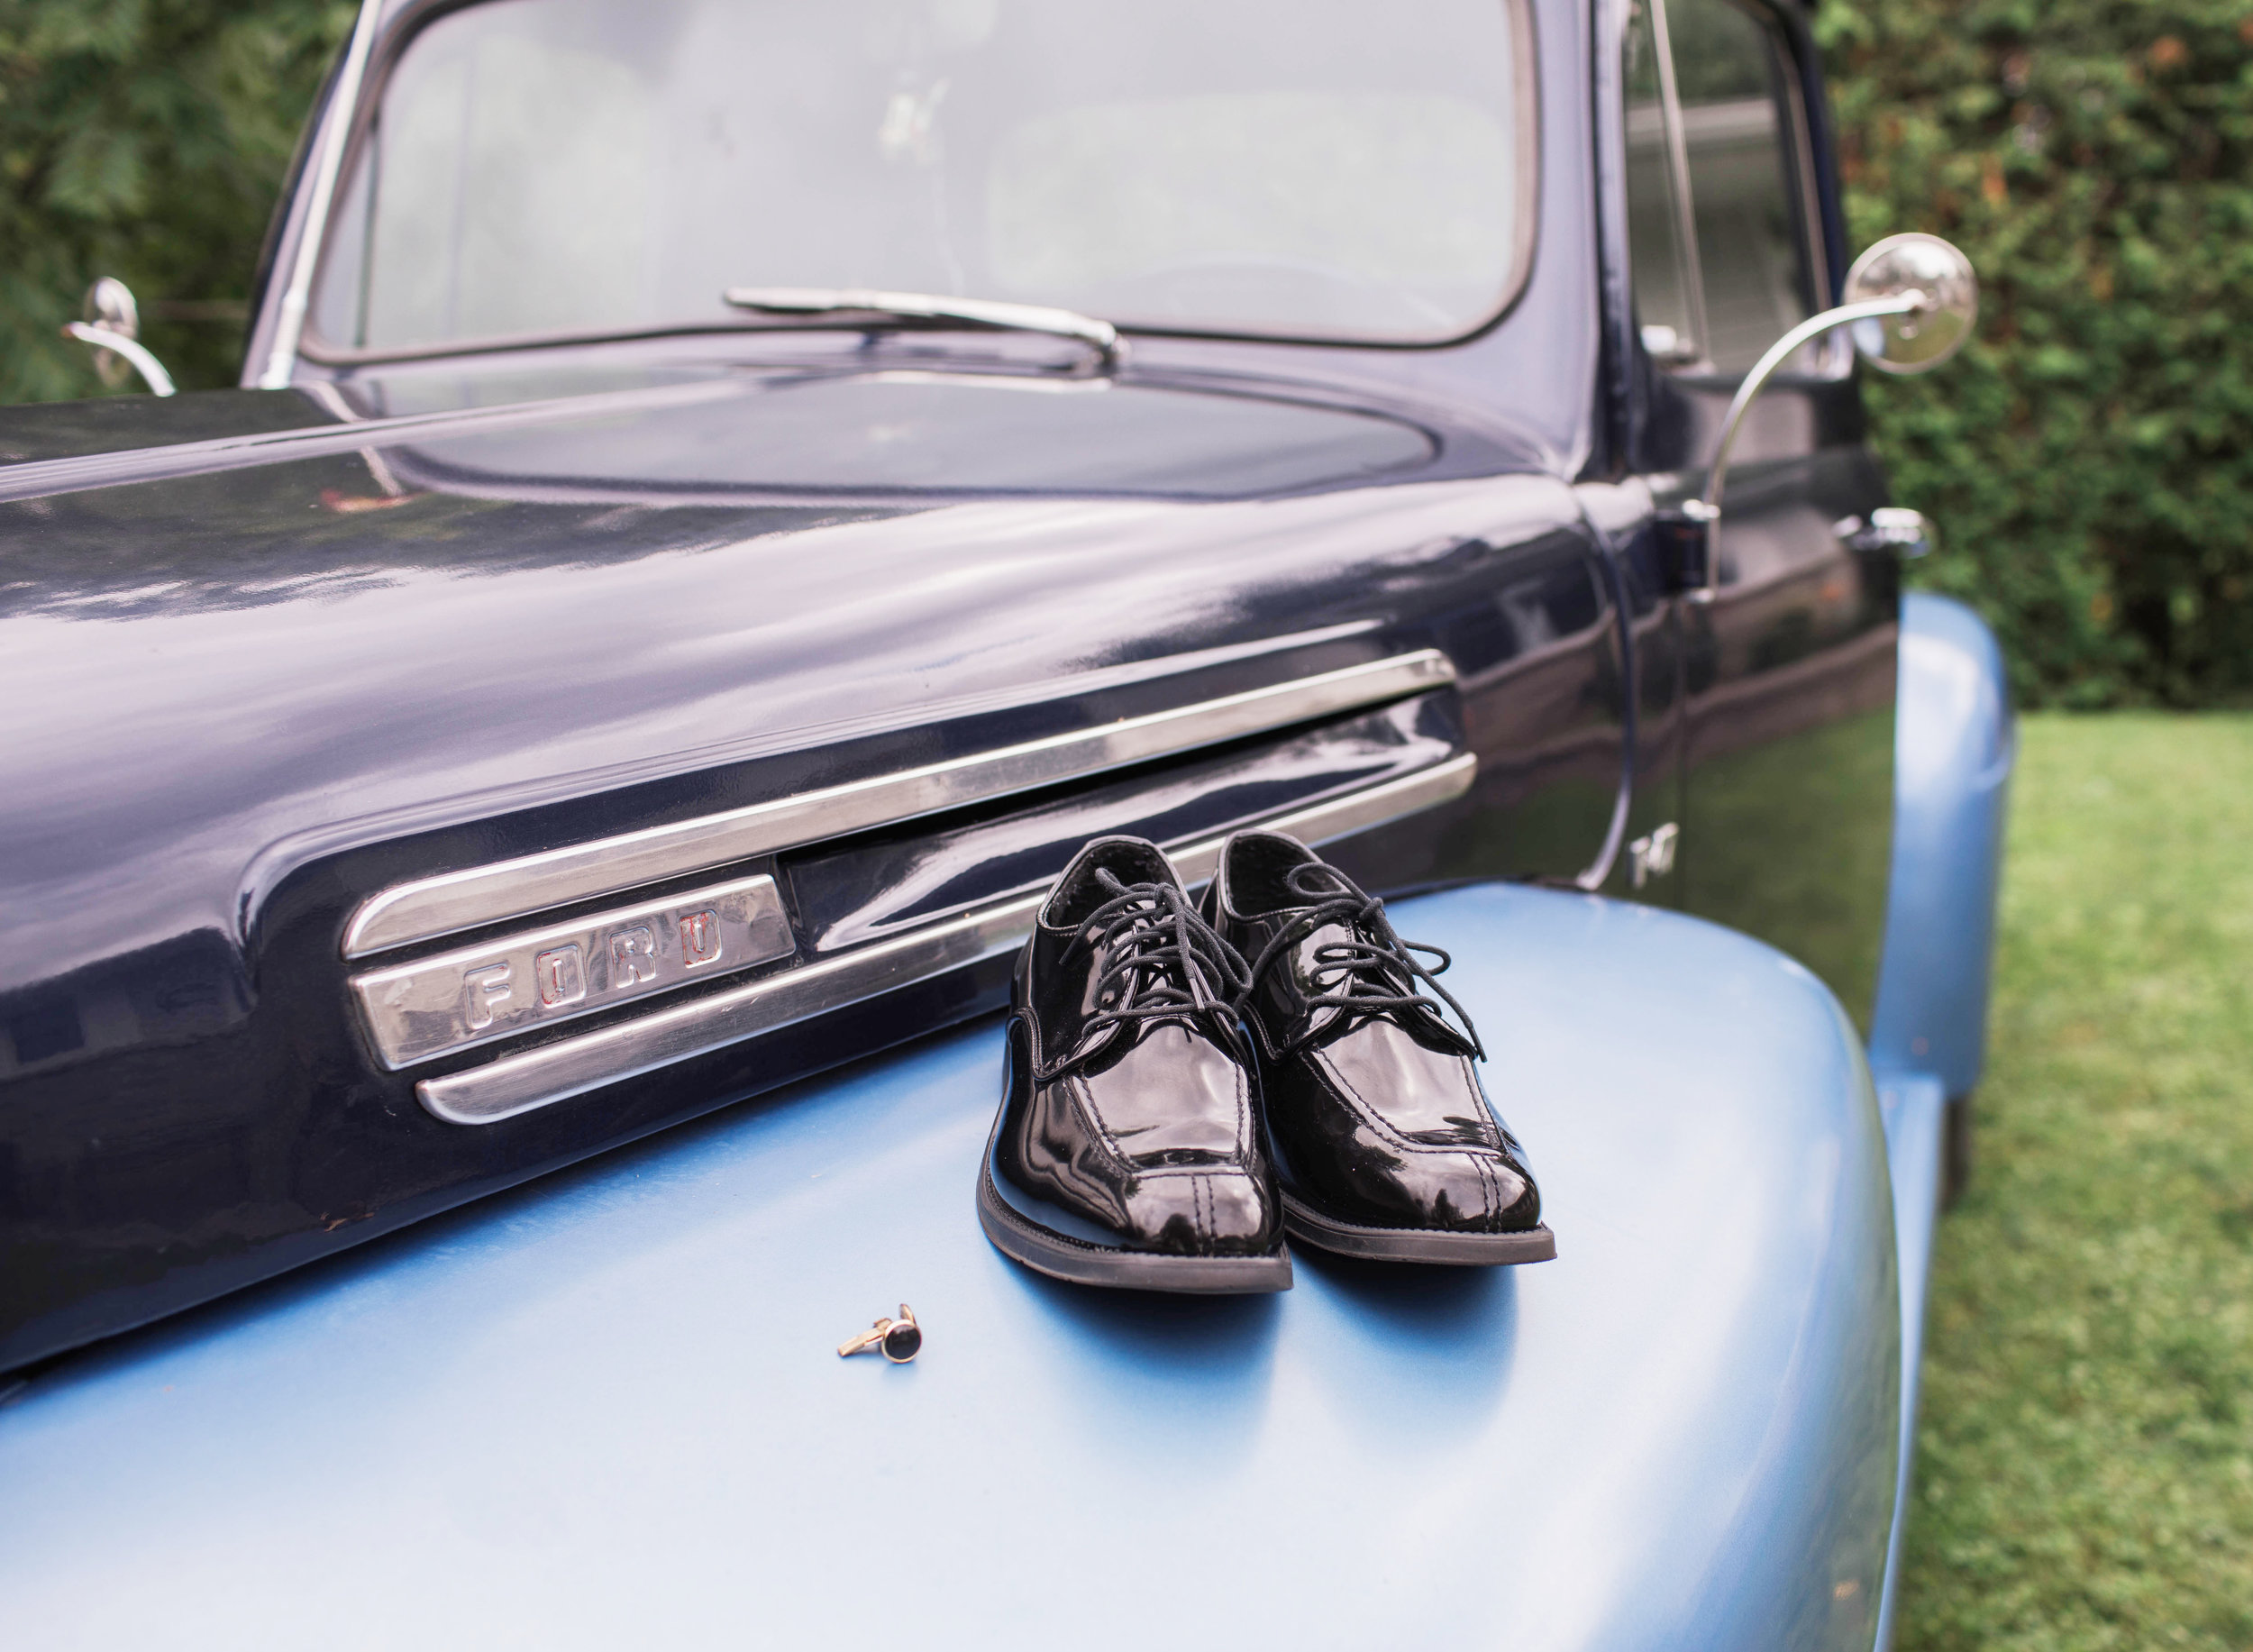 Morgan Bress Photography | Lindsay Wedding Photographer | Kawartha Lakes Wedding Photographer | Ontario Wedding Photographer |  Apple Orchard Wedding, Old truck, blue truck, wedding trucks, shoes and trucks, wedding shoes